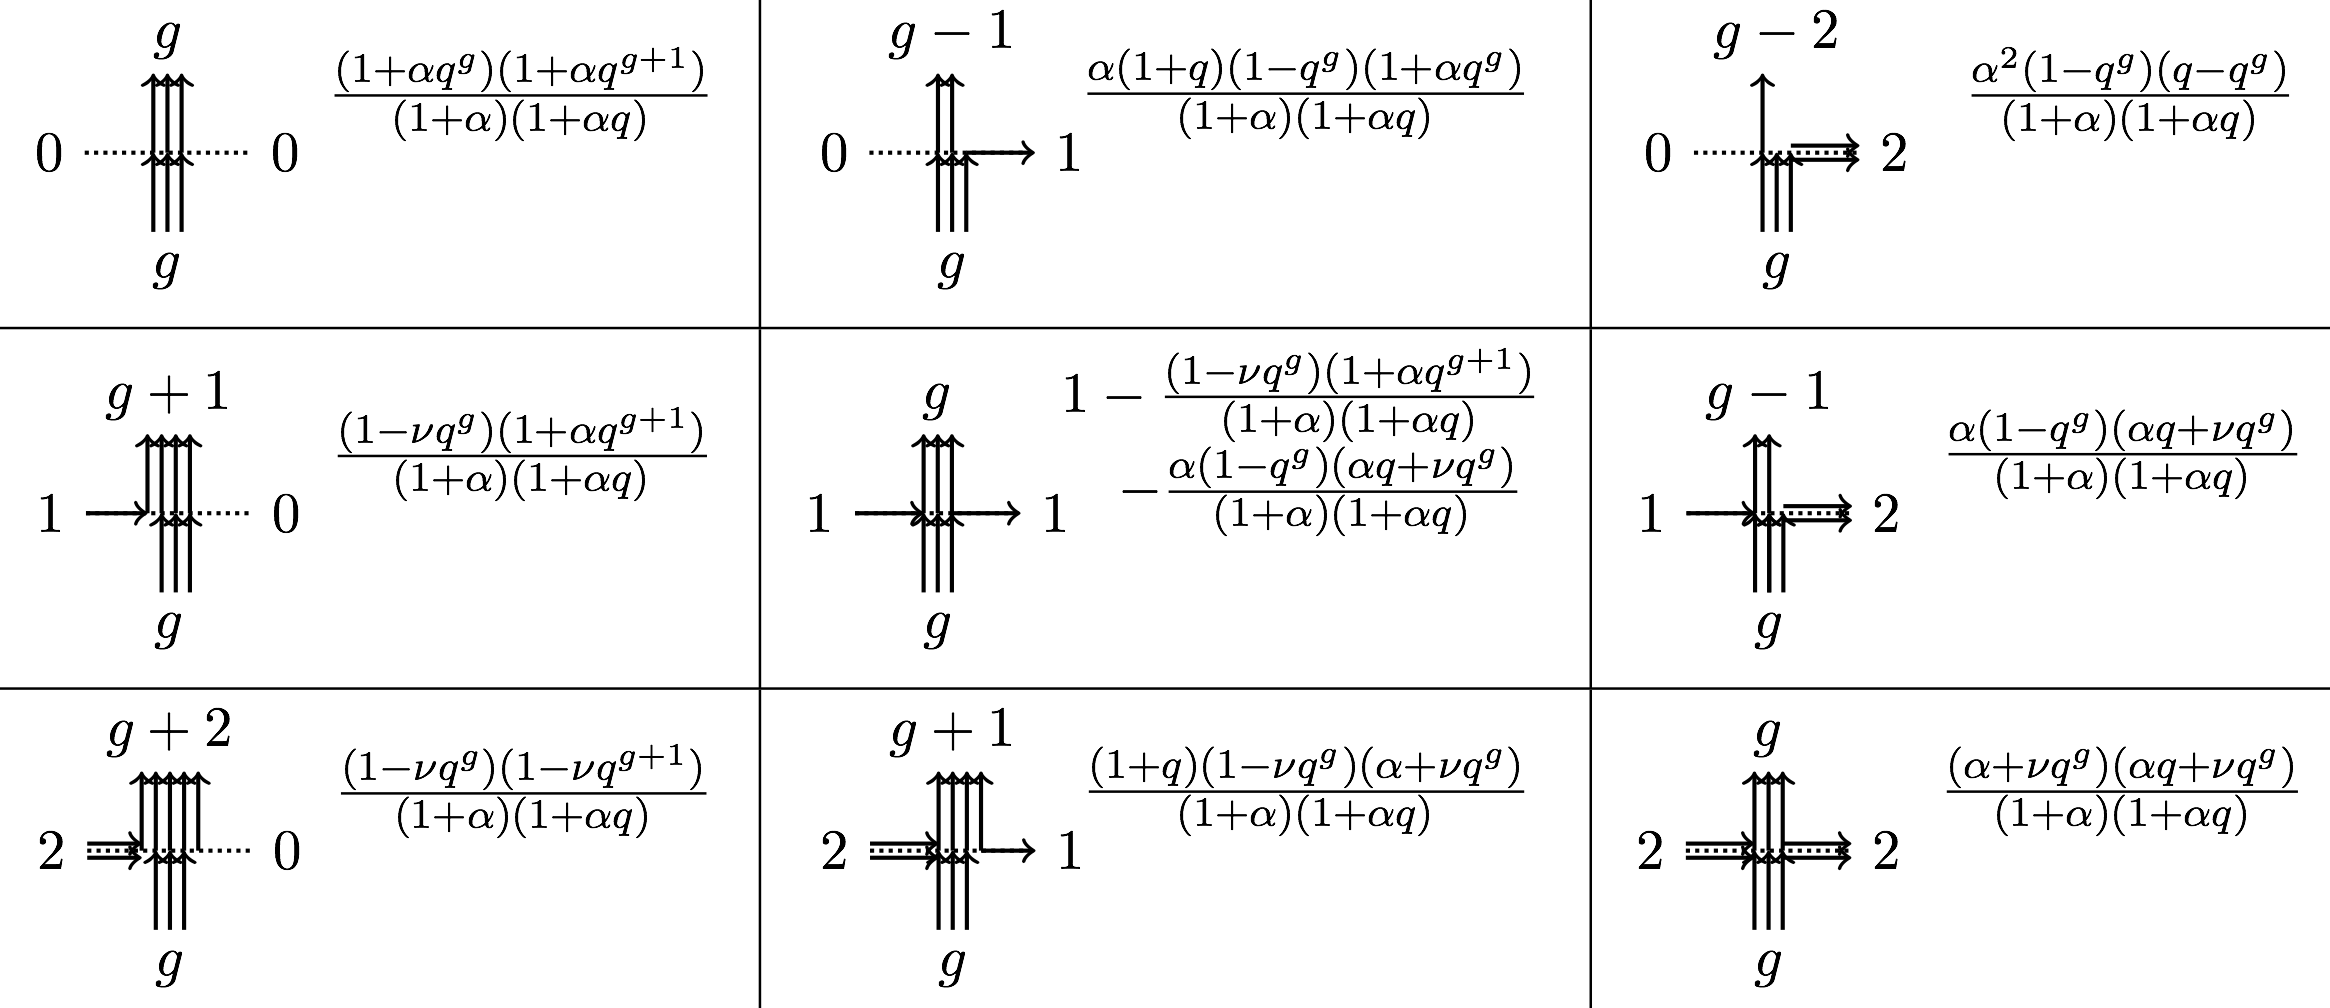 Simulations of stochastic higher spin vertex model